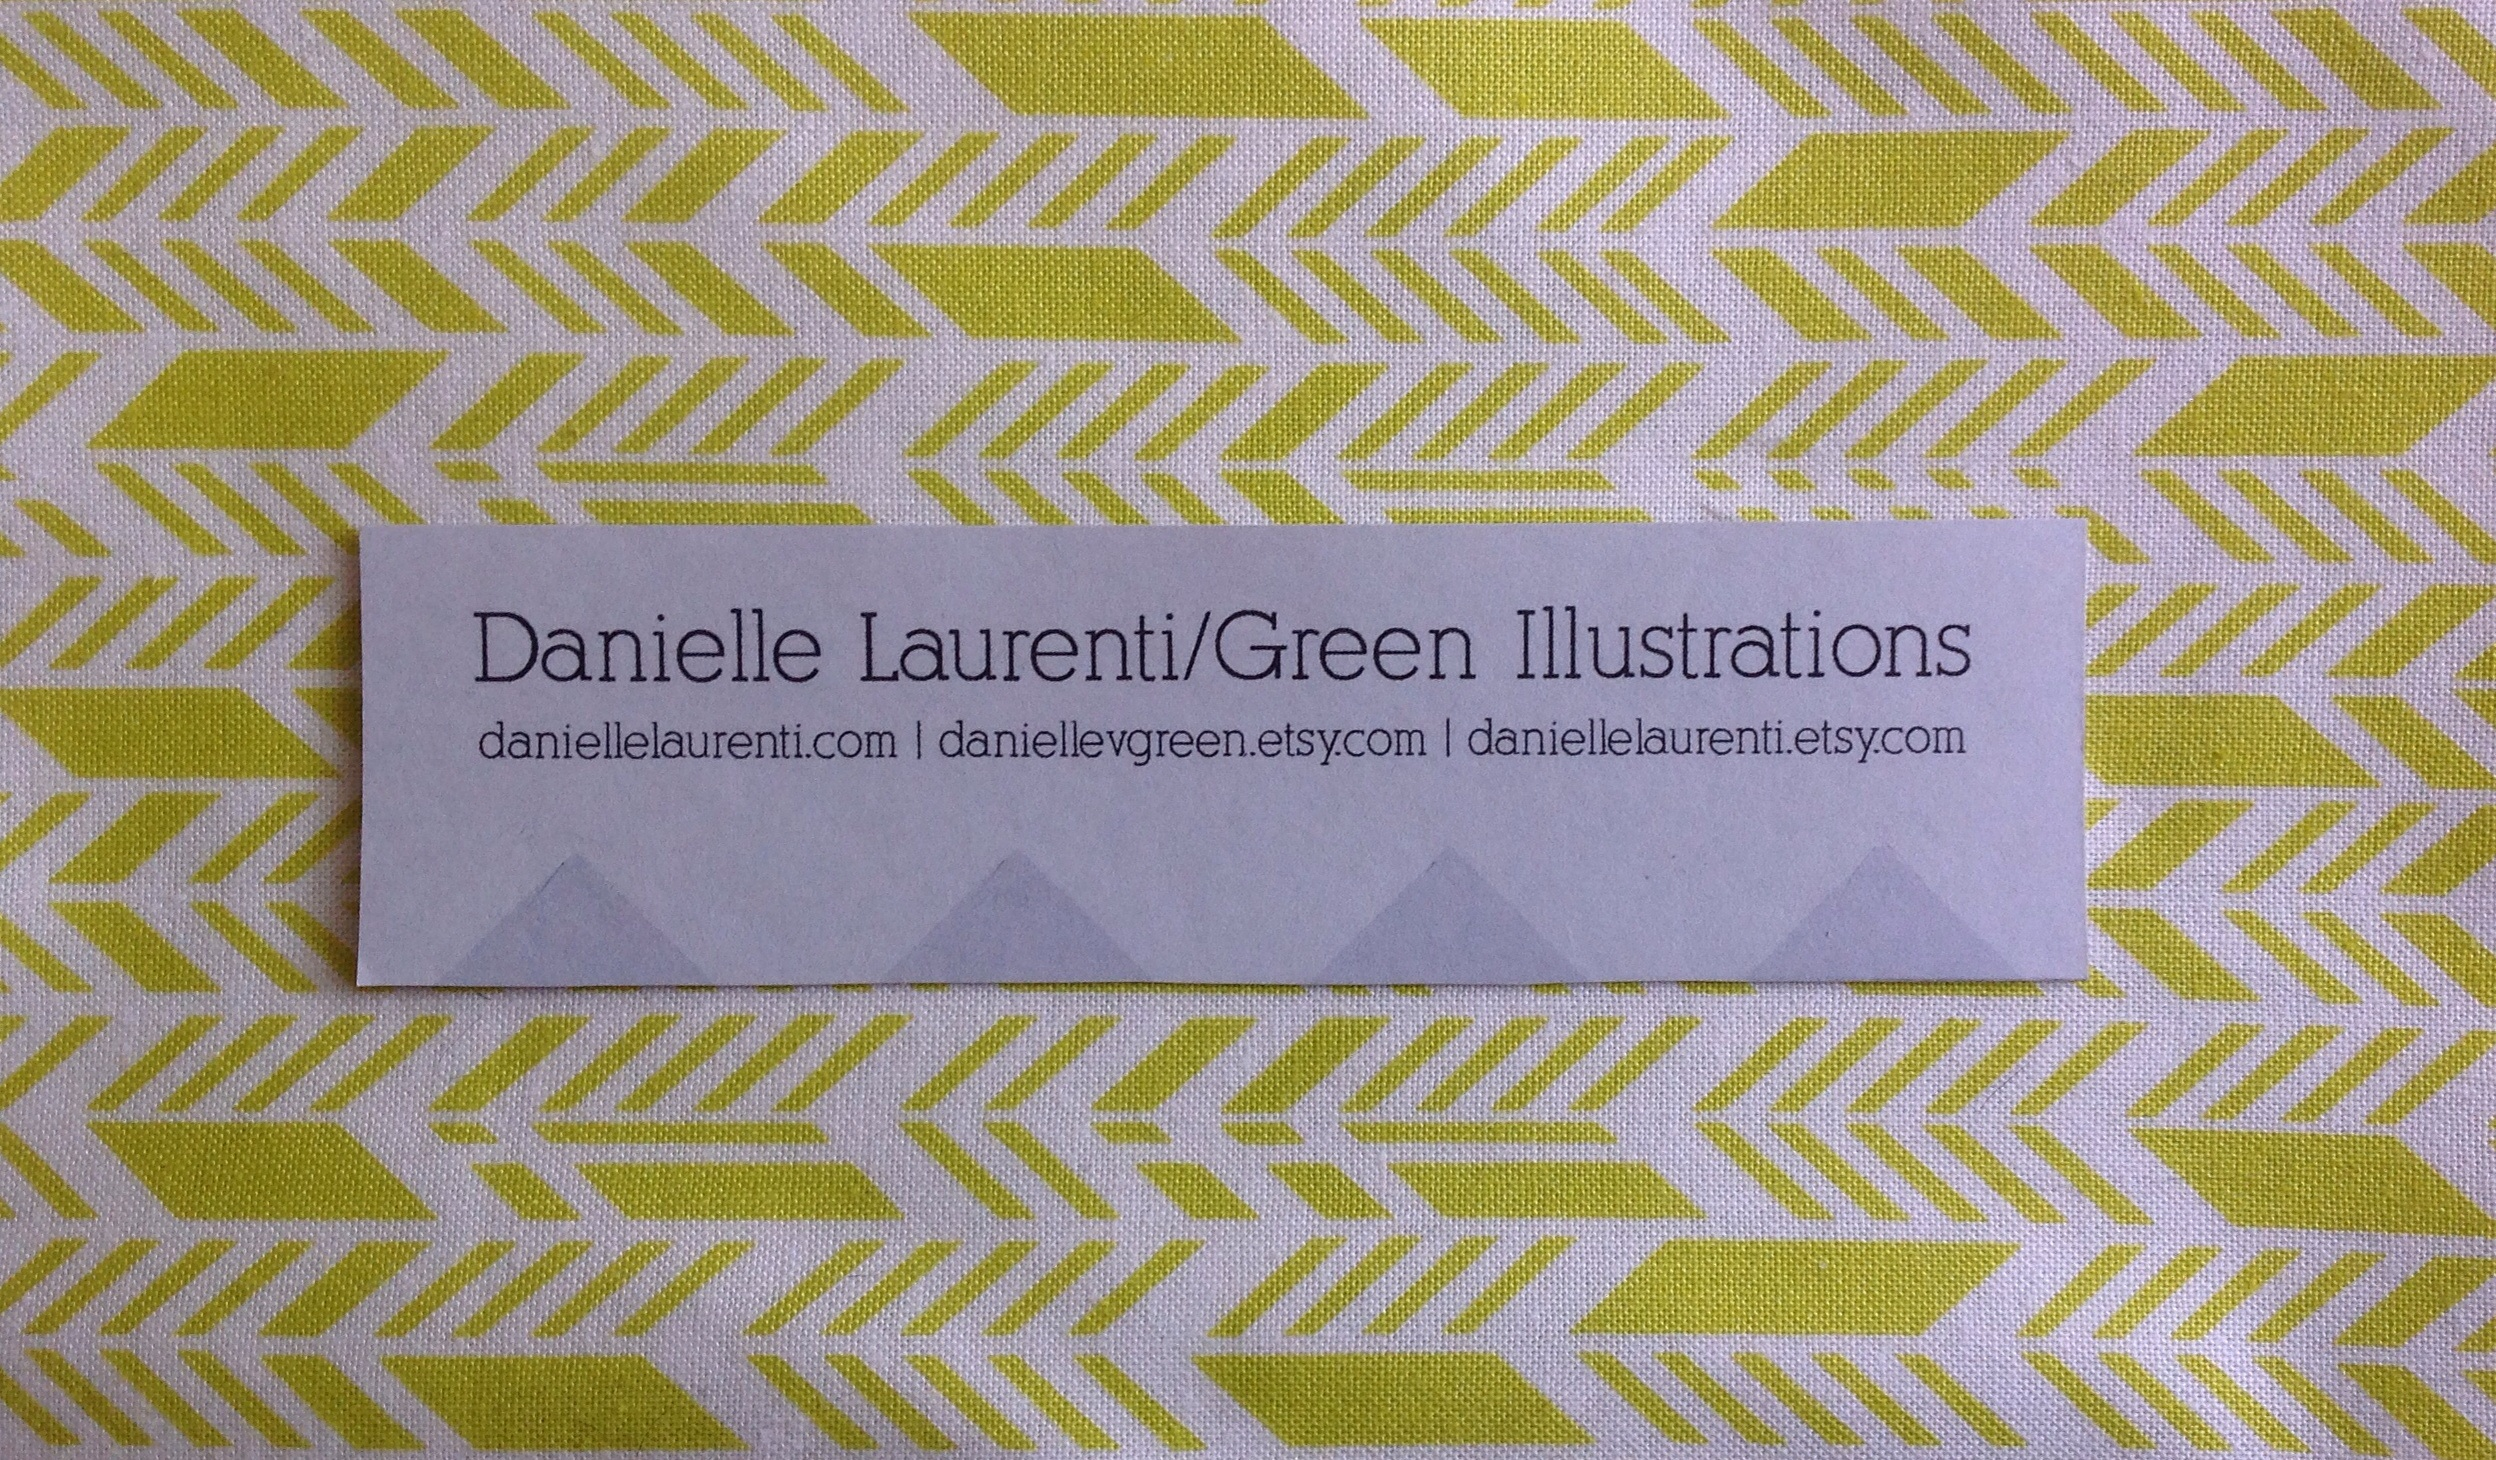 Danielle Laurenti/Green Illustrations